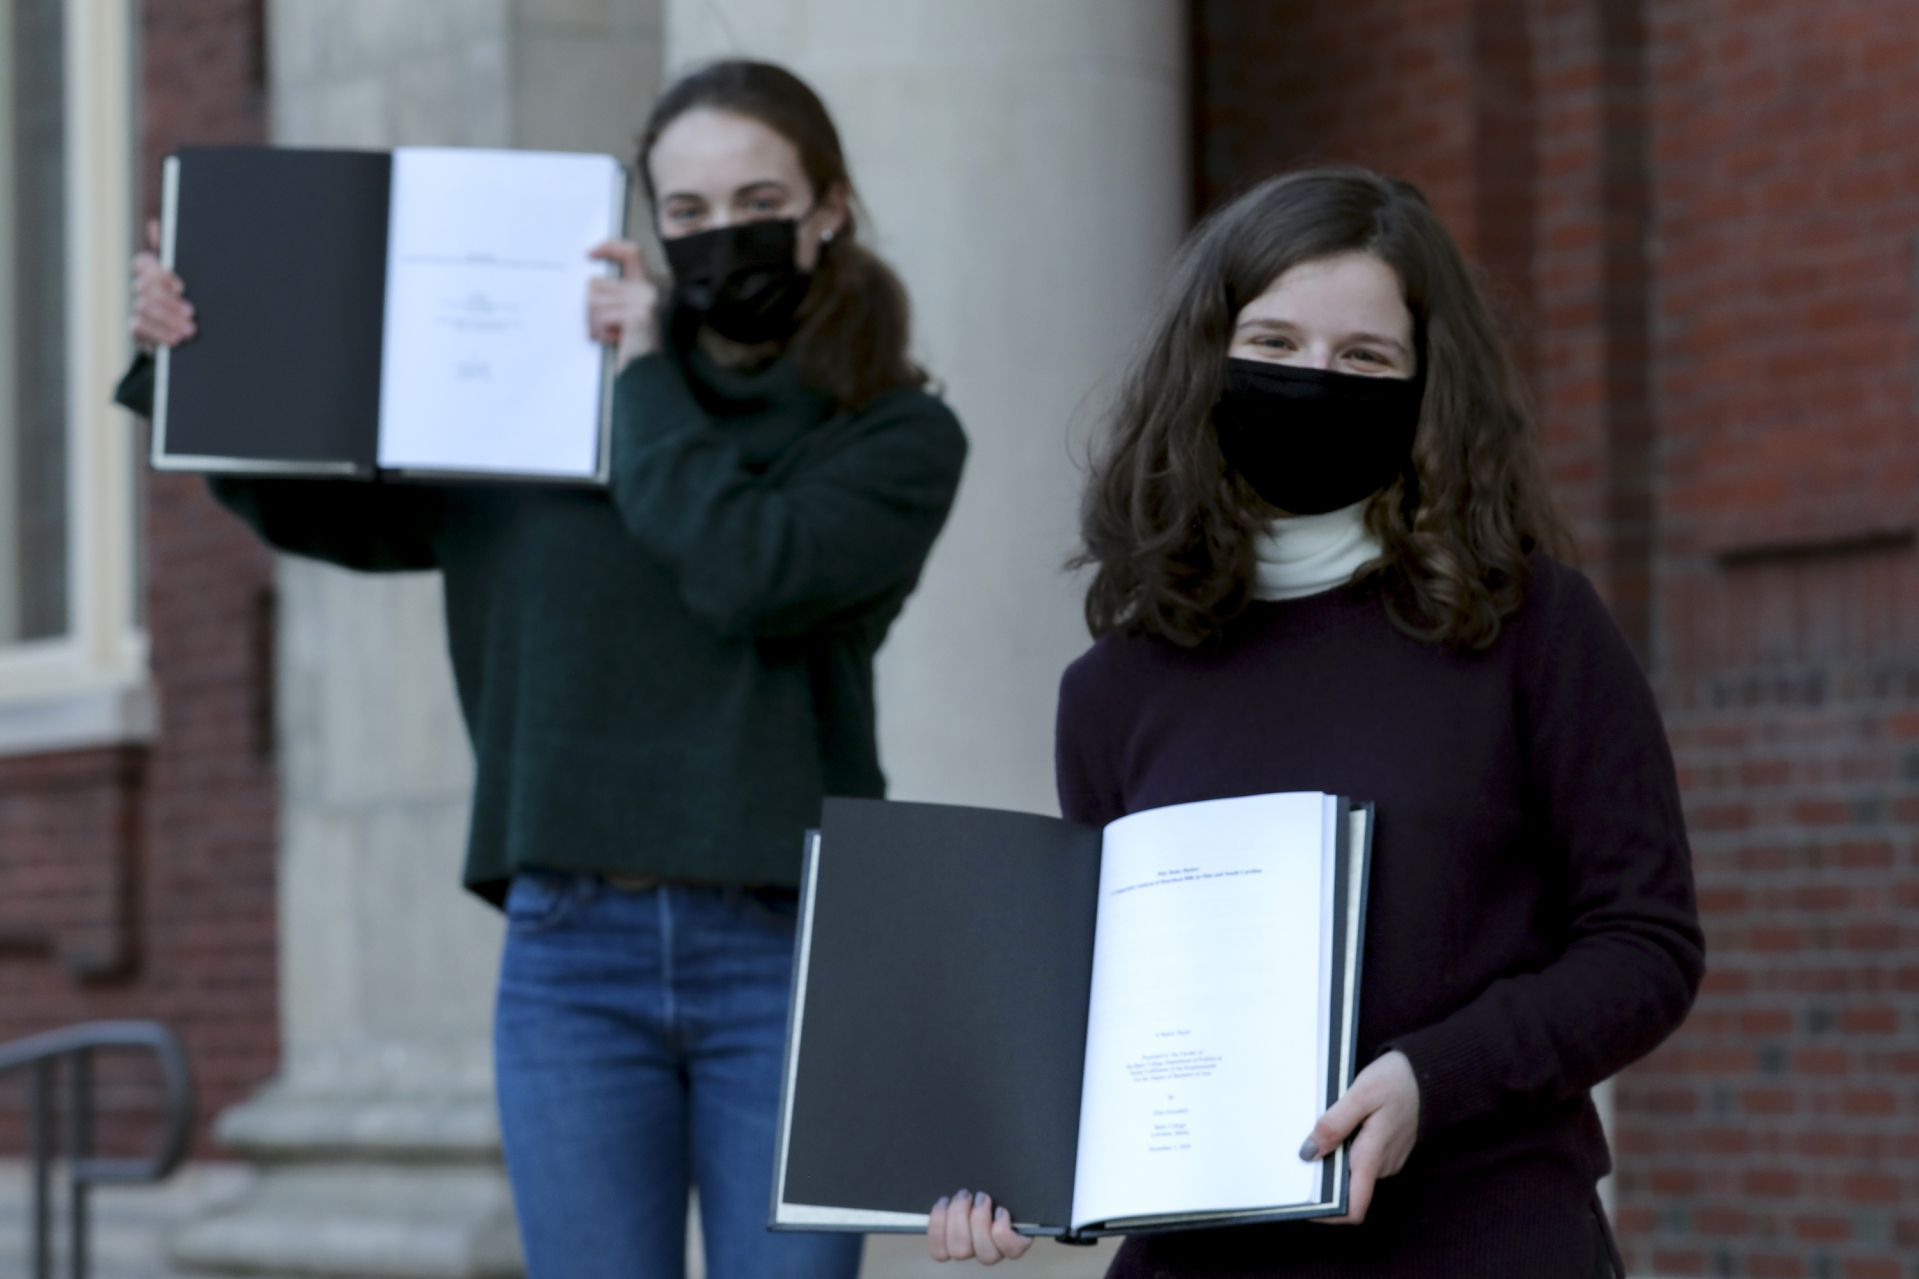 """A beloved ritual continues.(From left) Elizabeth Fairman '21 of Lathrup Village, Mich., joined Elise Grossfeld '21 of Bethesda, Md., as they bound their senior theses on the steps of Coram Library at the end of the day on March 3, 2021.""""We both finished writing our theses in December at the end of first semester but wanted to wait to bind until now. We both bound seniors' theses our freshmen year and wanted to continue on with this Bates tradition. In a year that is so different, it's so nice to be able to keep some of the most meaningful traditions.""""Grossfeld's thesis topic: """"Why Rules Matter: A Comparative Analysis of Heartbeat Bills in Ohio and South Carolina."""" Her thesis provides an analysis of how the filibuster has impacted whether or not various states have passed extreme abortion restrictions. Her thesis adviser: Professor of Politics Stephen EngelFairman's thesis topic: """"Two Detroits: Examining White Flight and Gentrification Through Critical Race Theory."""" Her thesis uses Critical Race Theory as a lens to analyze predatory housing contracts and practices against BIPOC Detroiters in the 20th century which has led to current gentrification in the city. Her thesis advisor: Visiting Assistant Professor of History Jeanne Essame"""